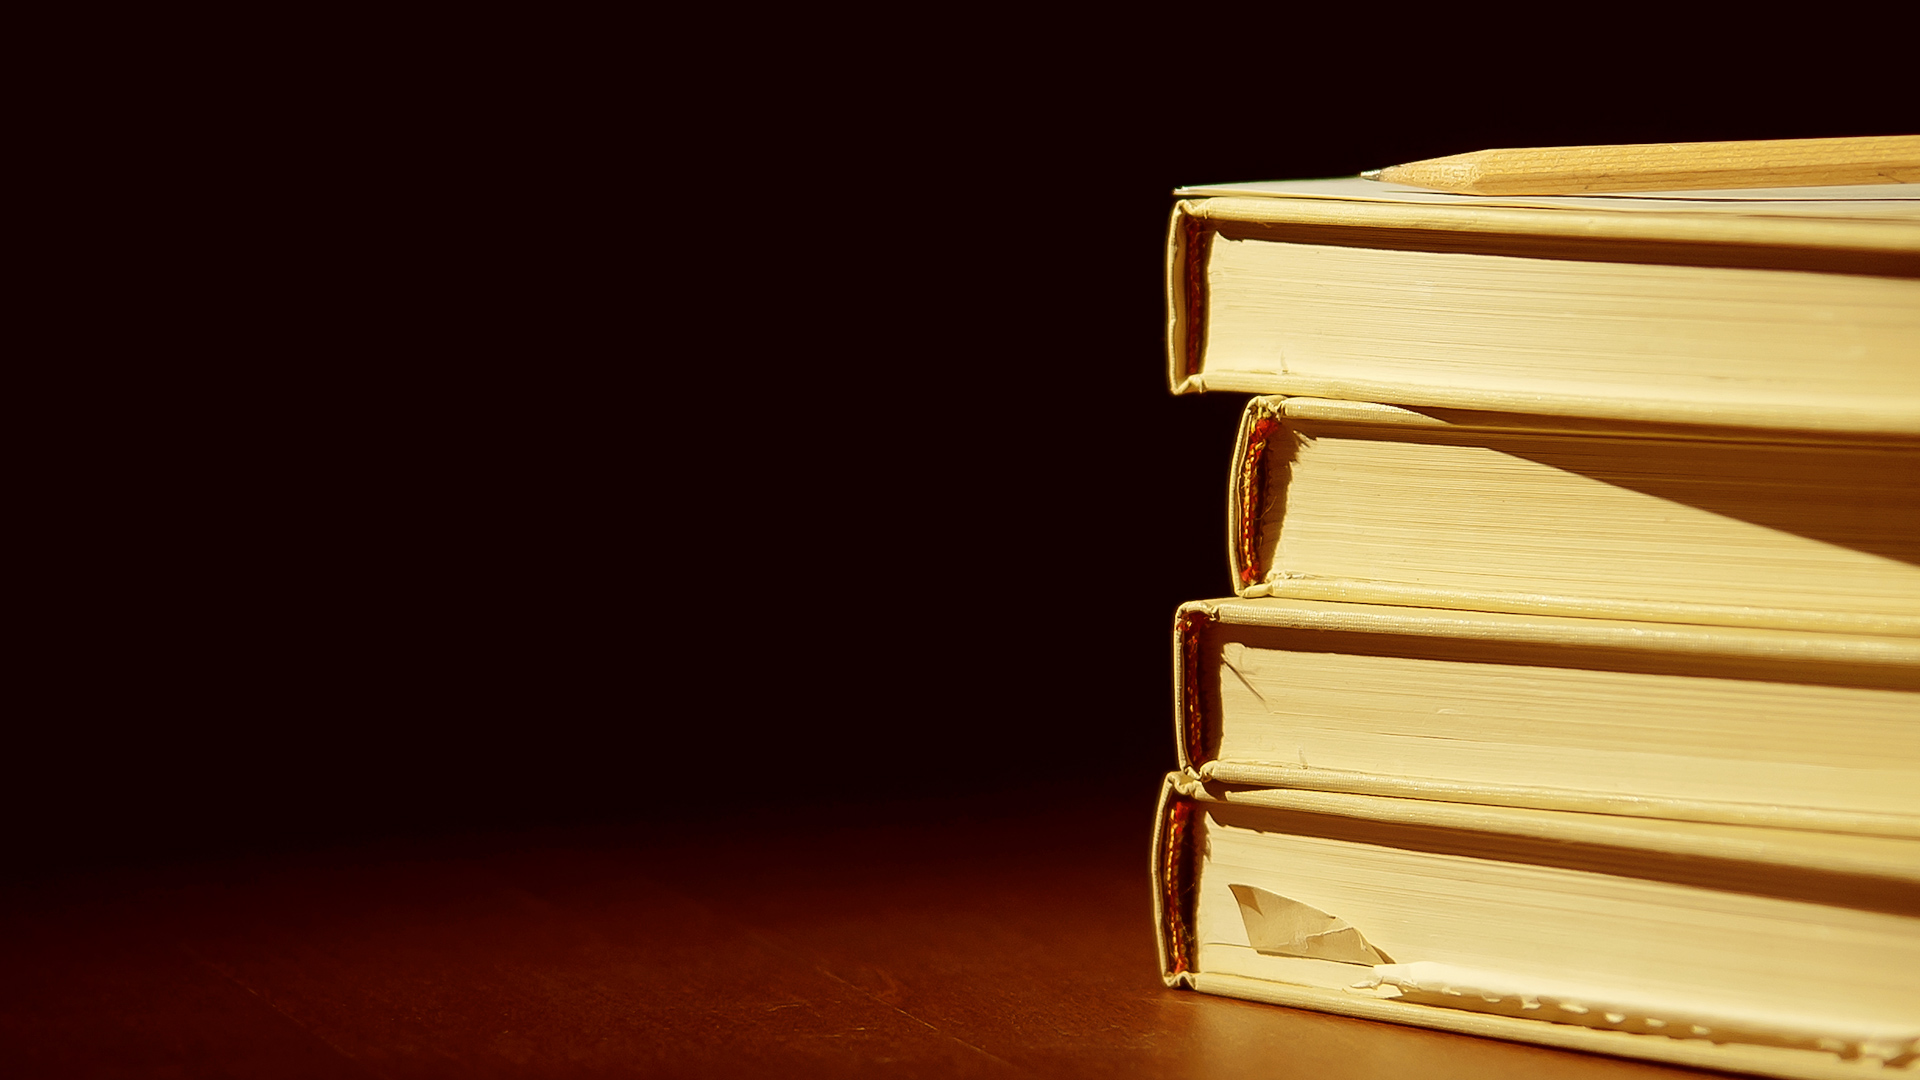 Books Wallpaper books wallpaper 49796 1920x1080 px ~ hdwallsource